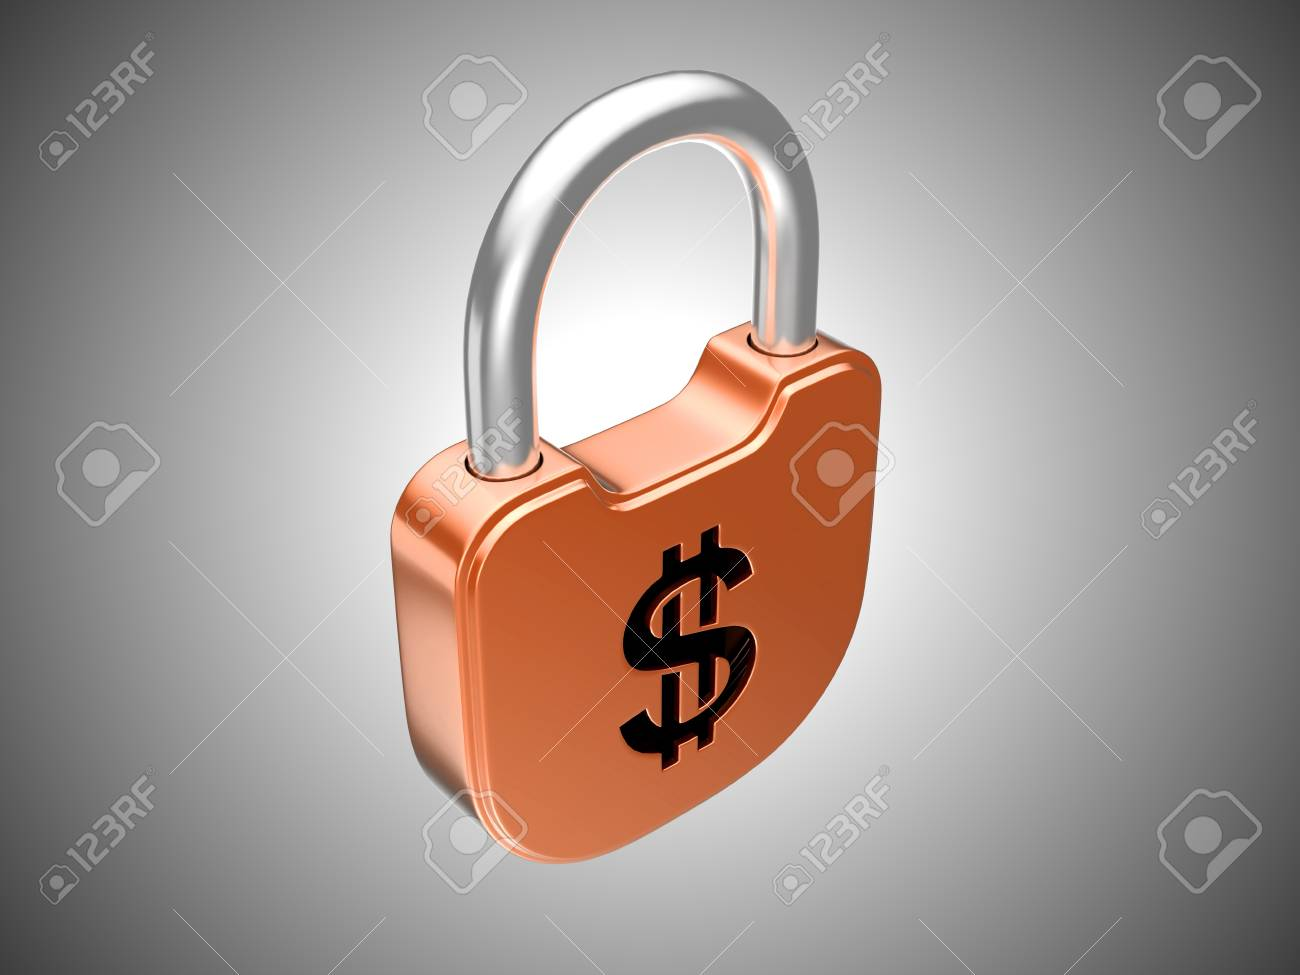 Locked lock: US dollar security currency concept. Over grey background Stock Photo - 8862954